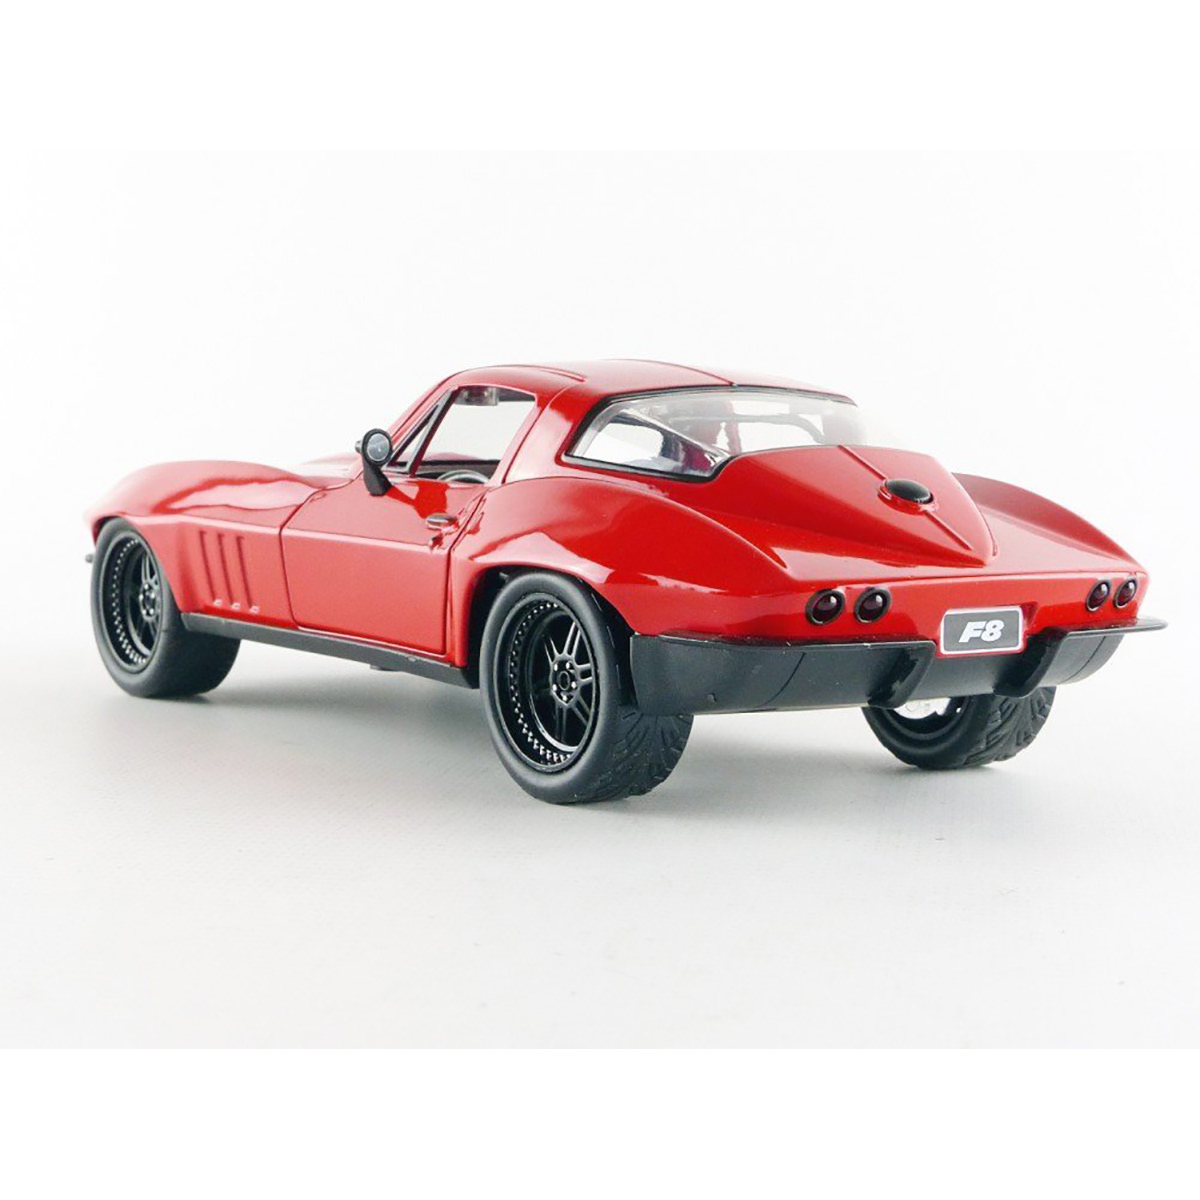 jada fast furious 1 24 f8 letty 39 s chevy corvette at hobby warehouse. Black Bedroom Furniture Sets. Home Design Ideas